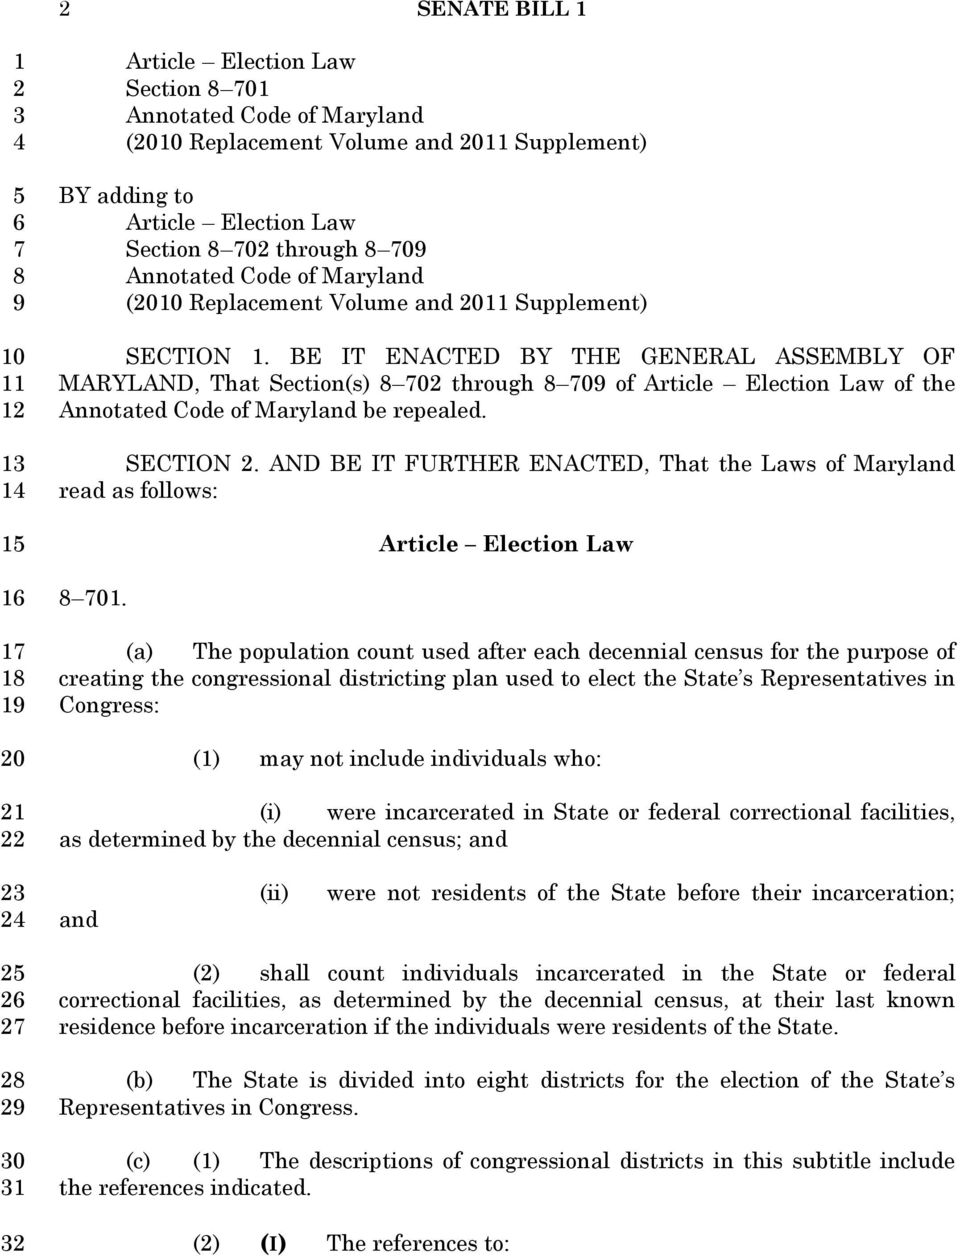 SECTION. AND BE IT FURTHER ENACTED, That the Laws of Maryland read as follows: Article Election Law 0.